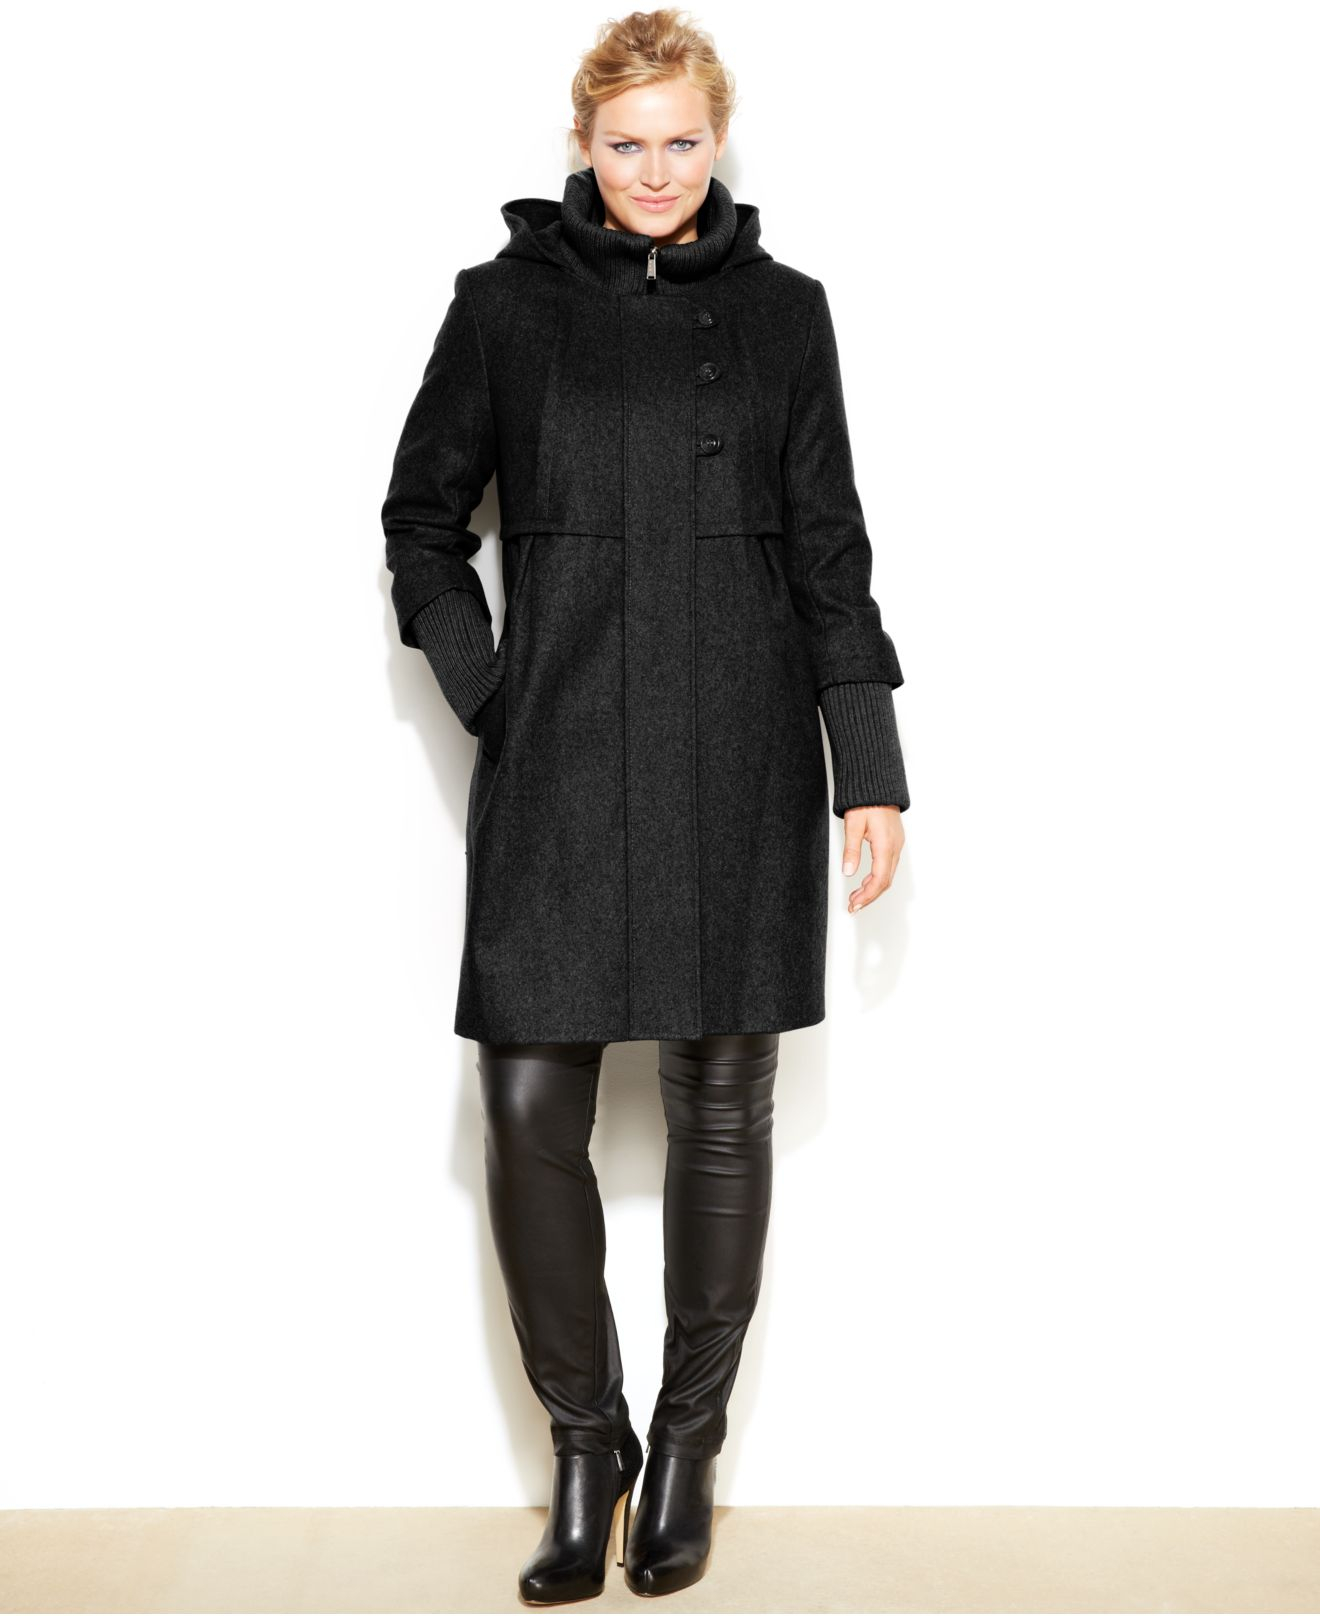 Dkny Plus Size Hooded Wool-Blend Babydoll Coat in Black | Lyst